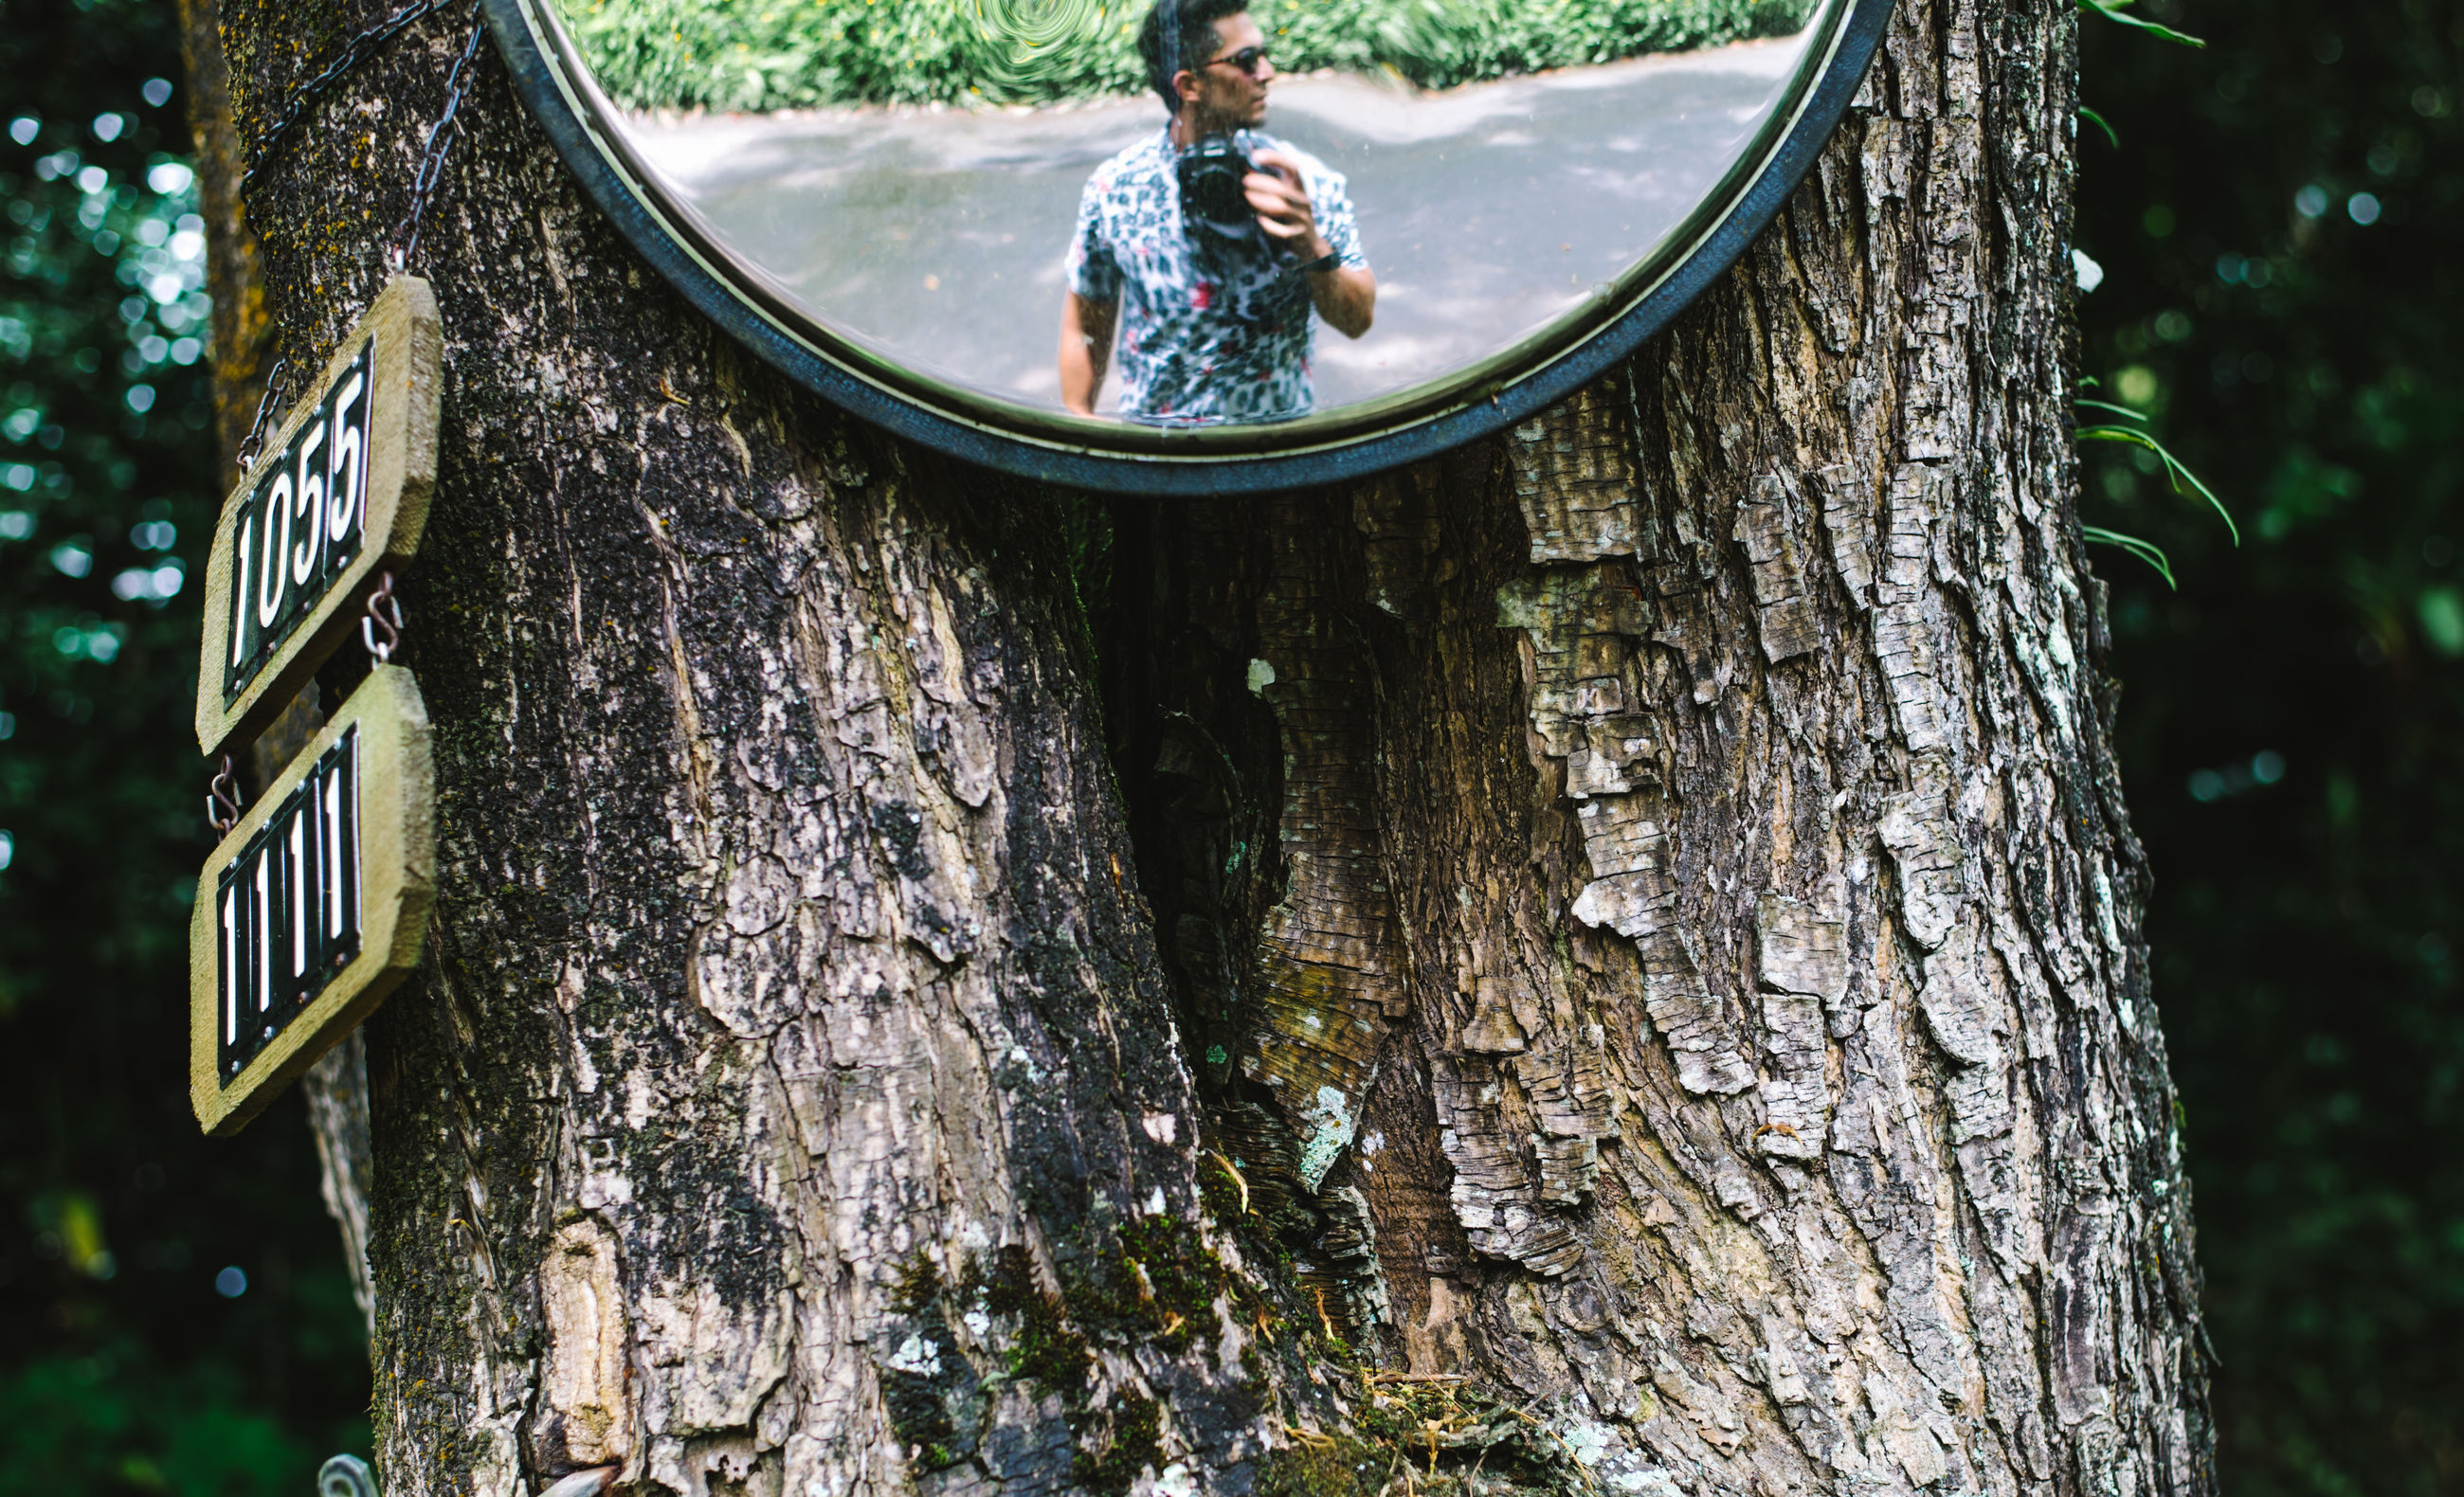 tree trunk, tree, real people, leisure activity, one person, day, childhood, outdoors, lifestyles, sitting, nature, rear view, growth, women, close-up, people